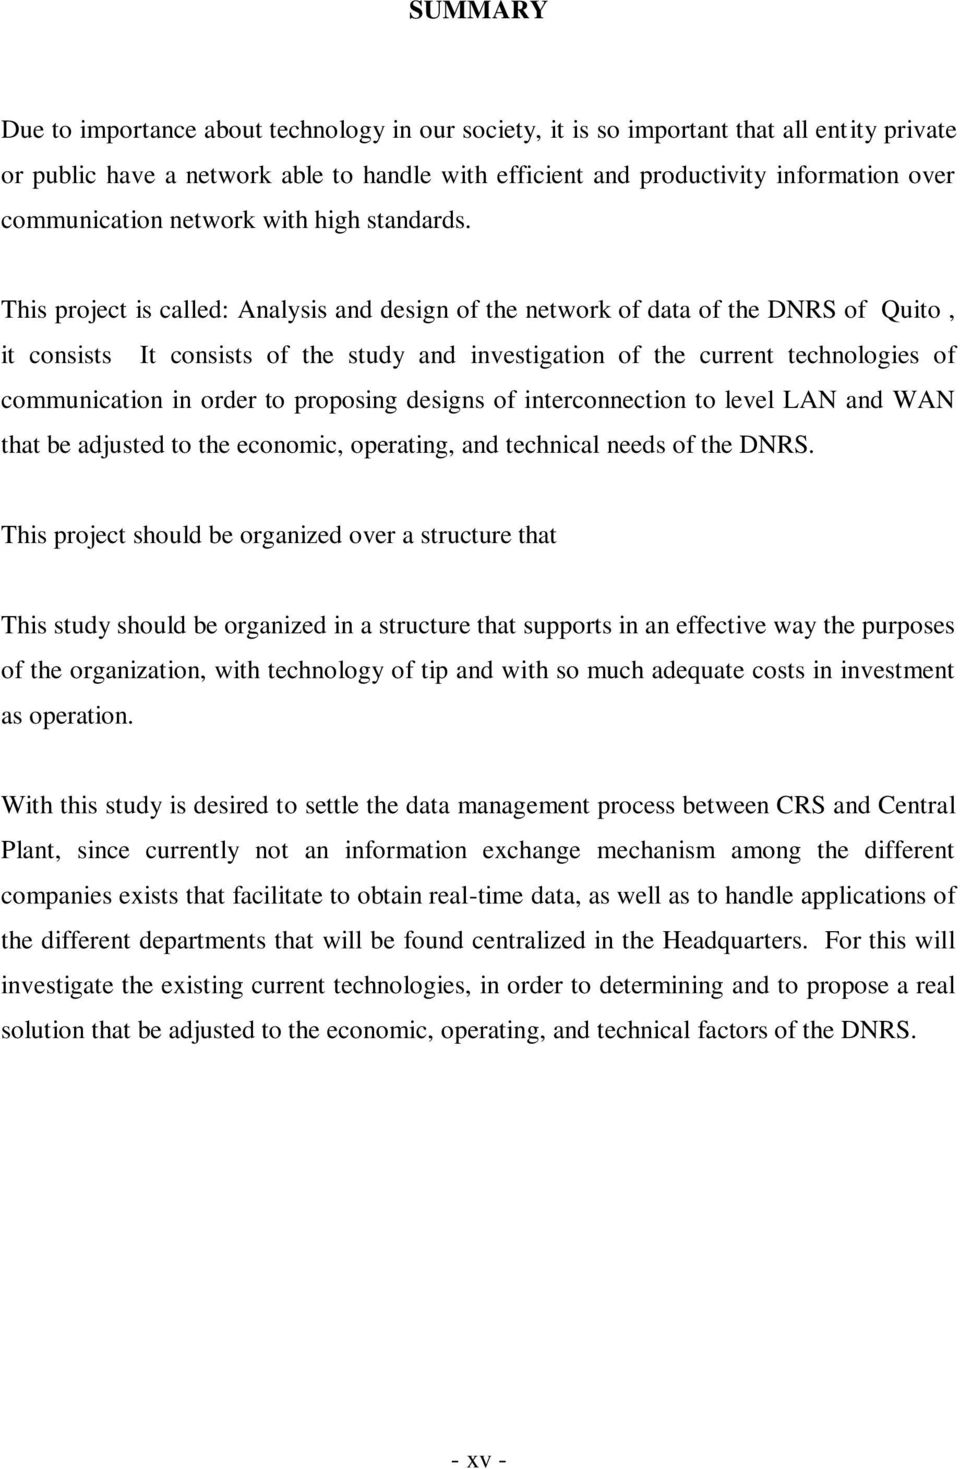 This project is called: Analysis and design of the network of data of the DNRS of Quito, it consists It consists of the study and investigation of the current technologies of communication in order